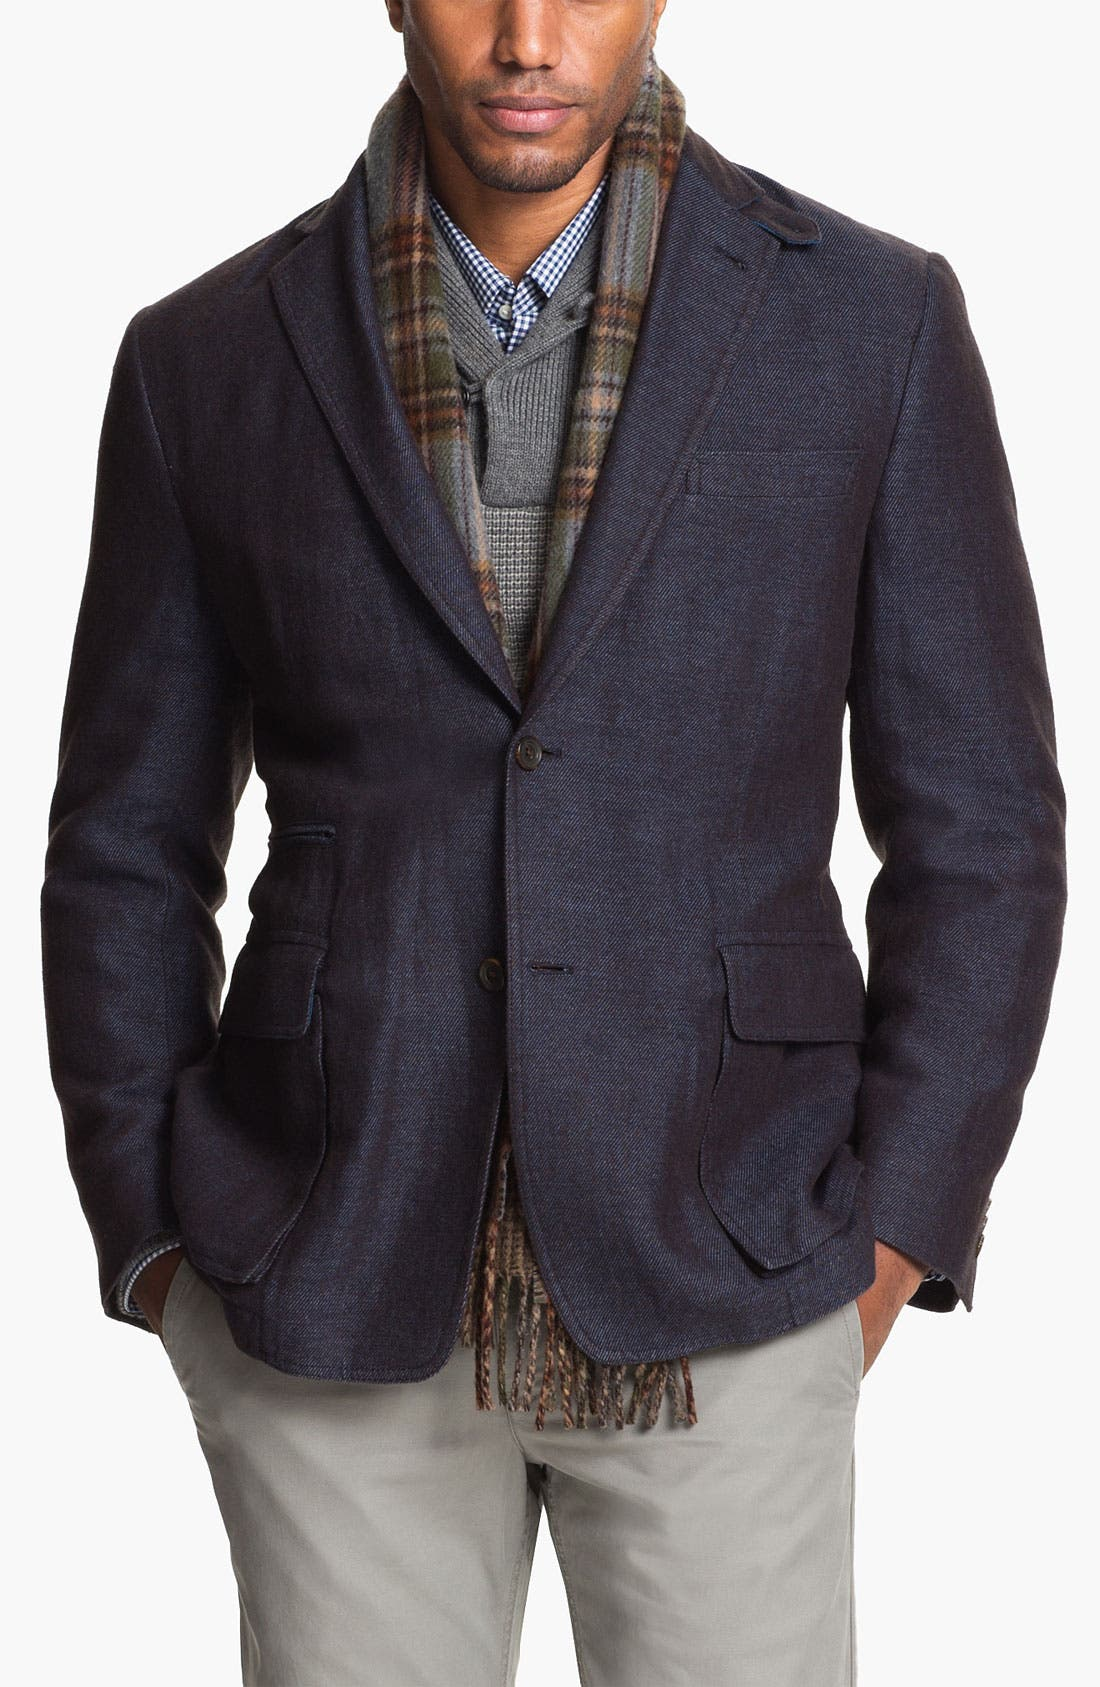 Main Image - Kroon 'Waits' Linen & Wool Blend Sportcoat